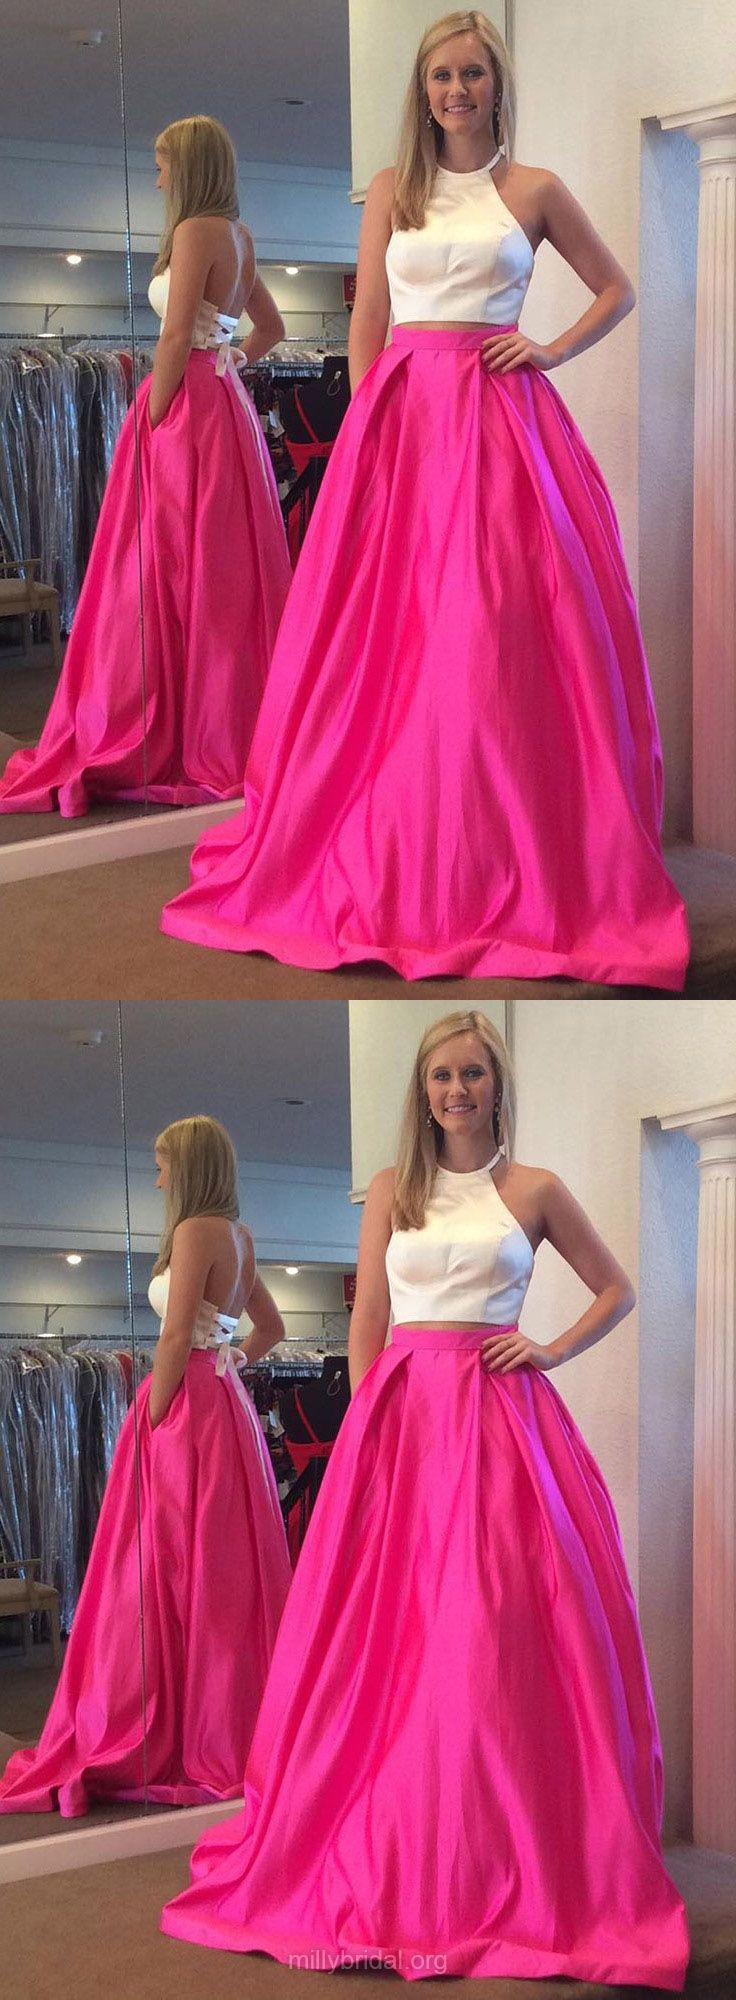 2922 best Homecoming/Prom dresses images on Pinterest | 18th ...